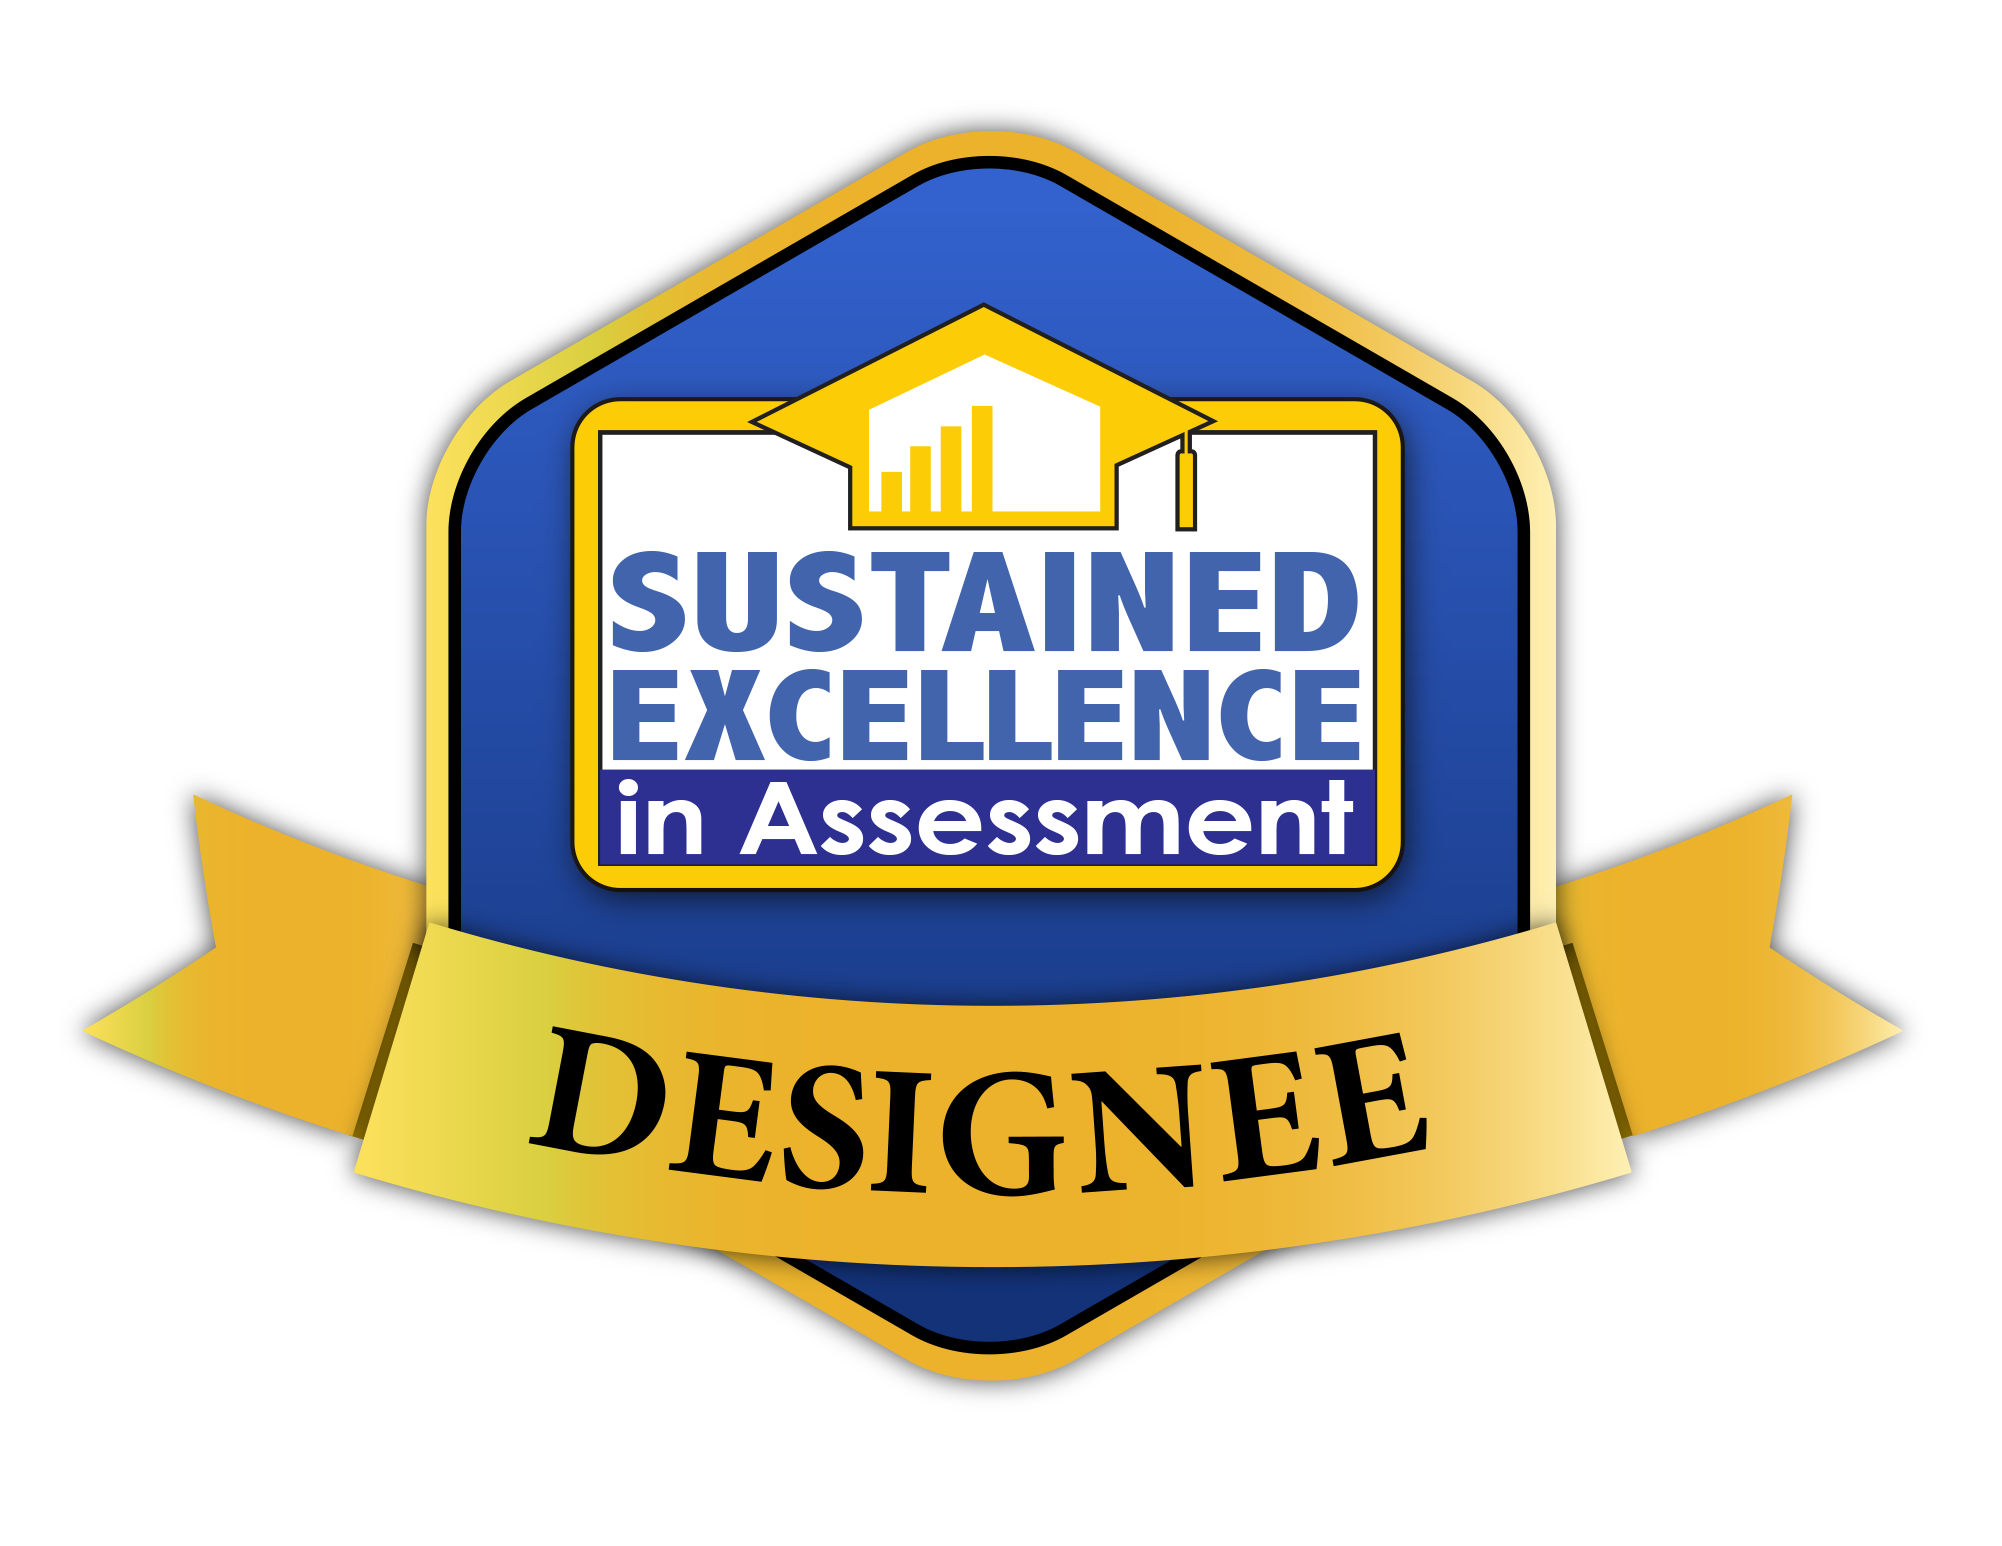 Excellence in Assessment Designation